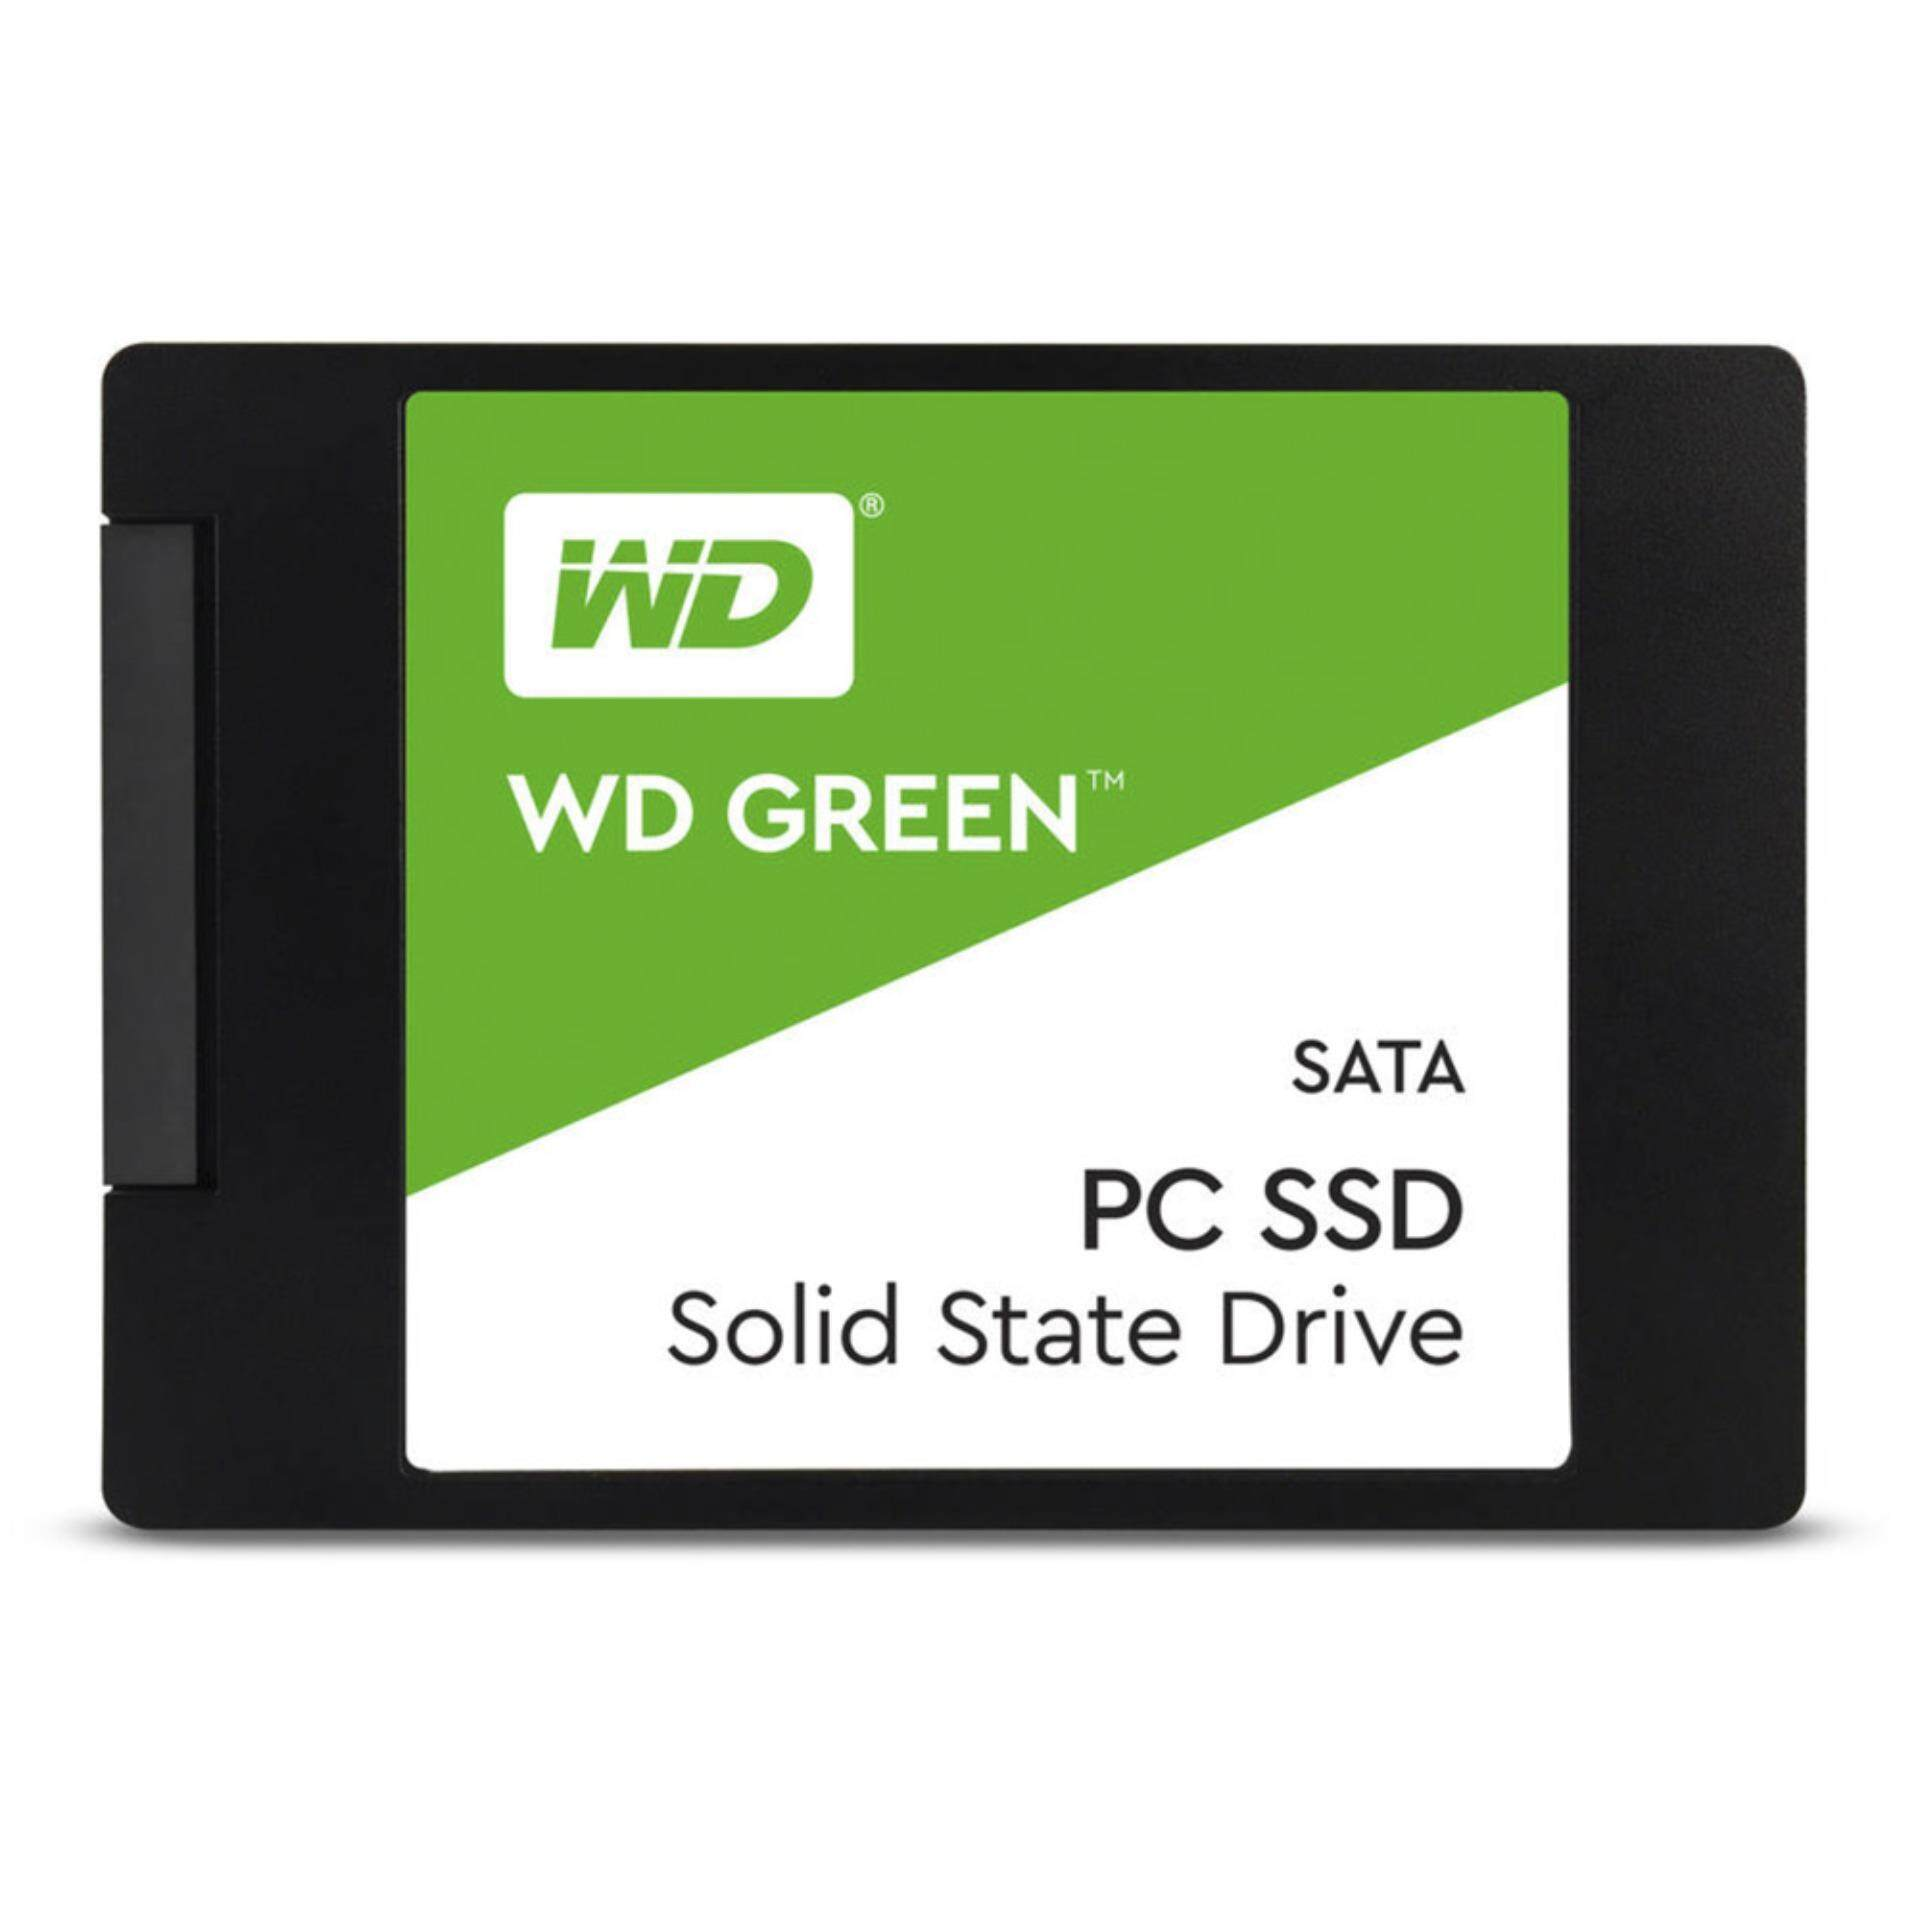 Wdssd 120gb Green (wds120g2g0a) By Lazada Retail Wd.